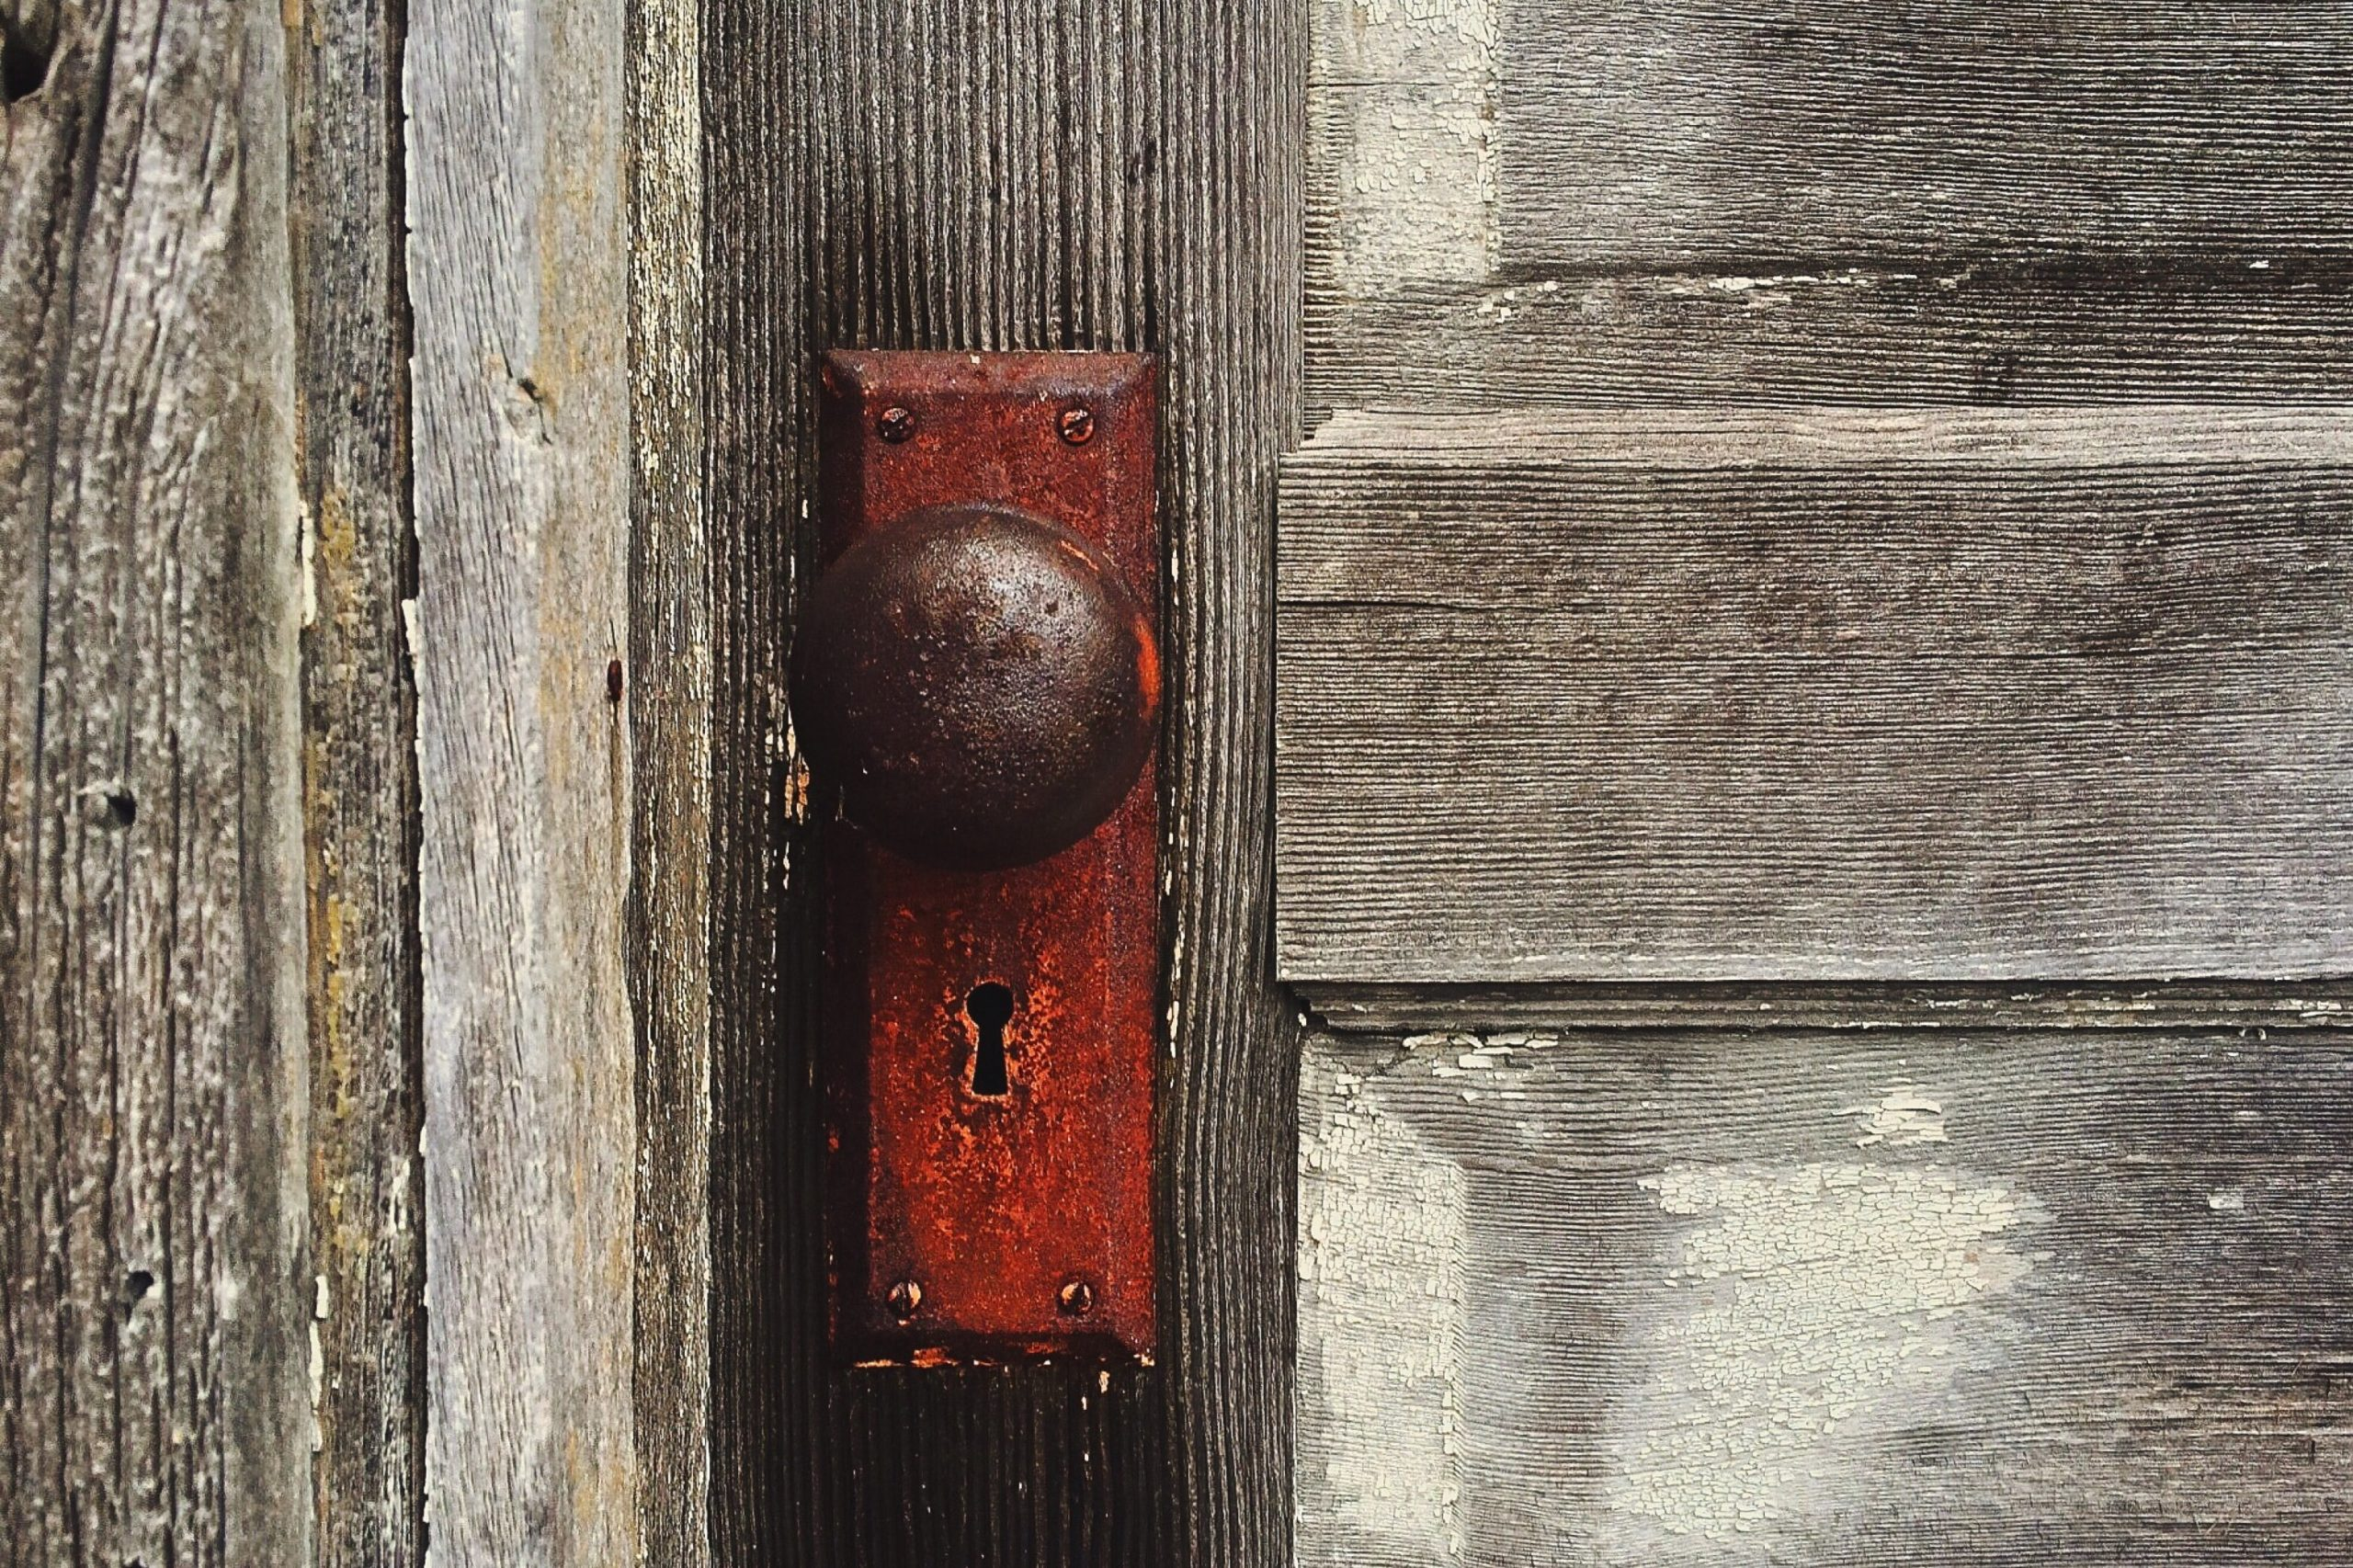 Types of Door Knobs - Paint Covered Overalls